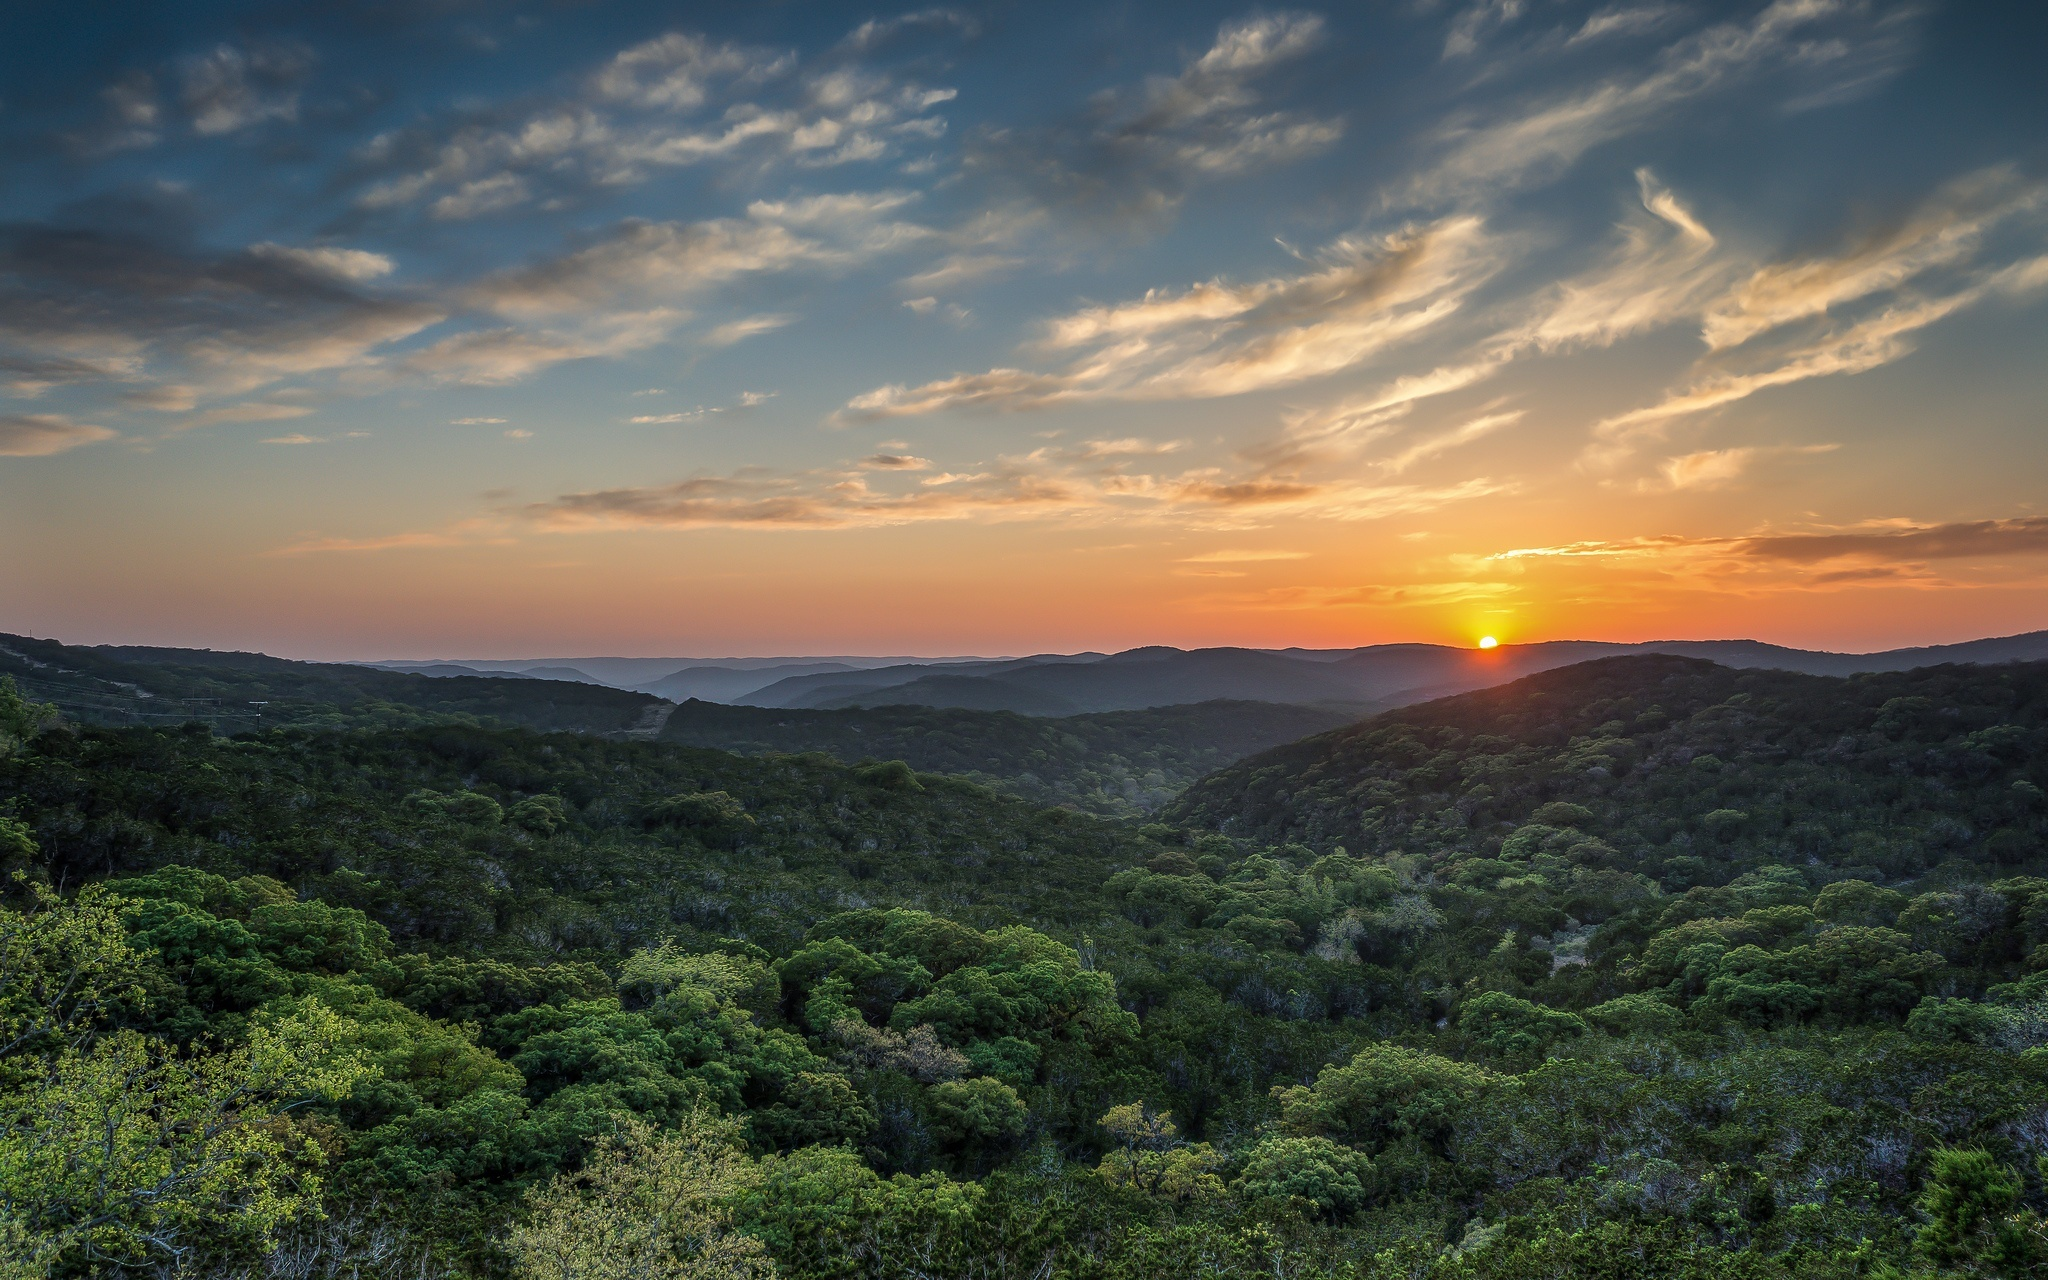 Thinking of Moving to Austin, San Antonio or the Hill Country?